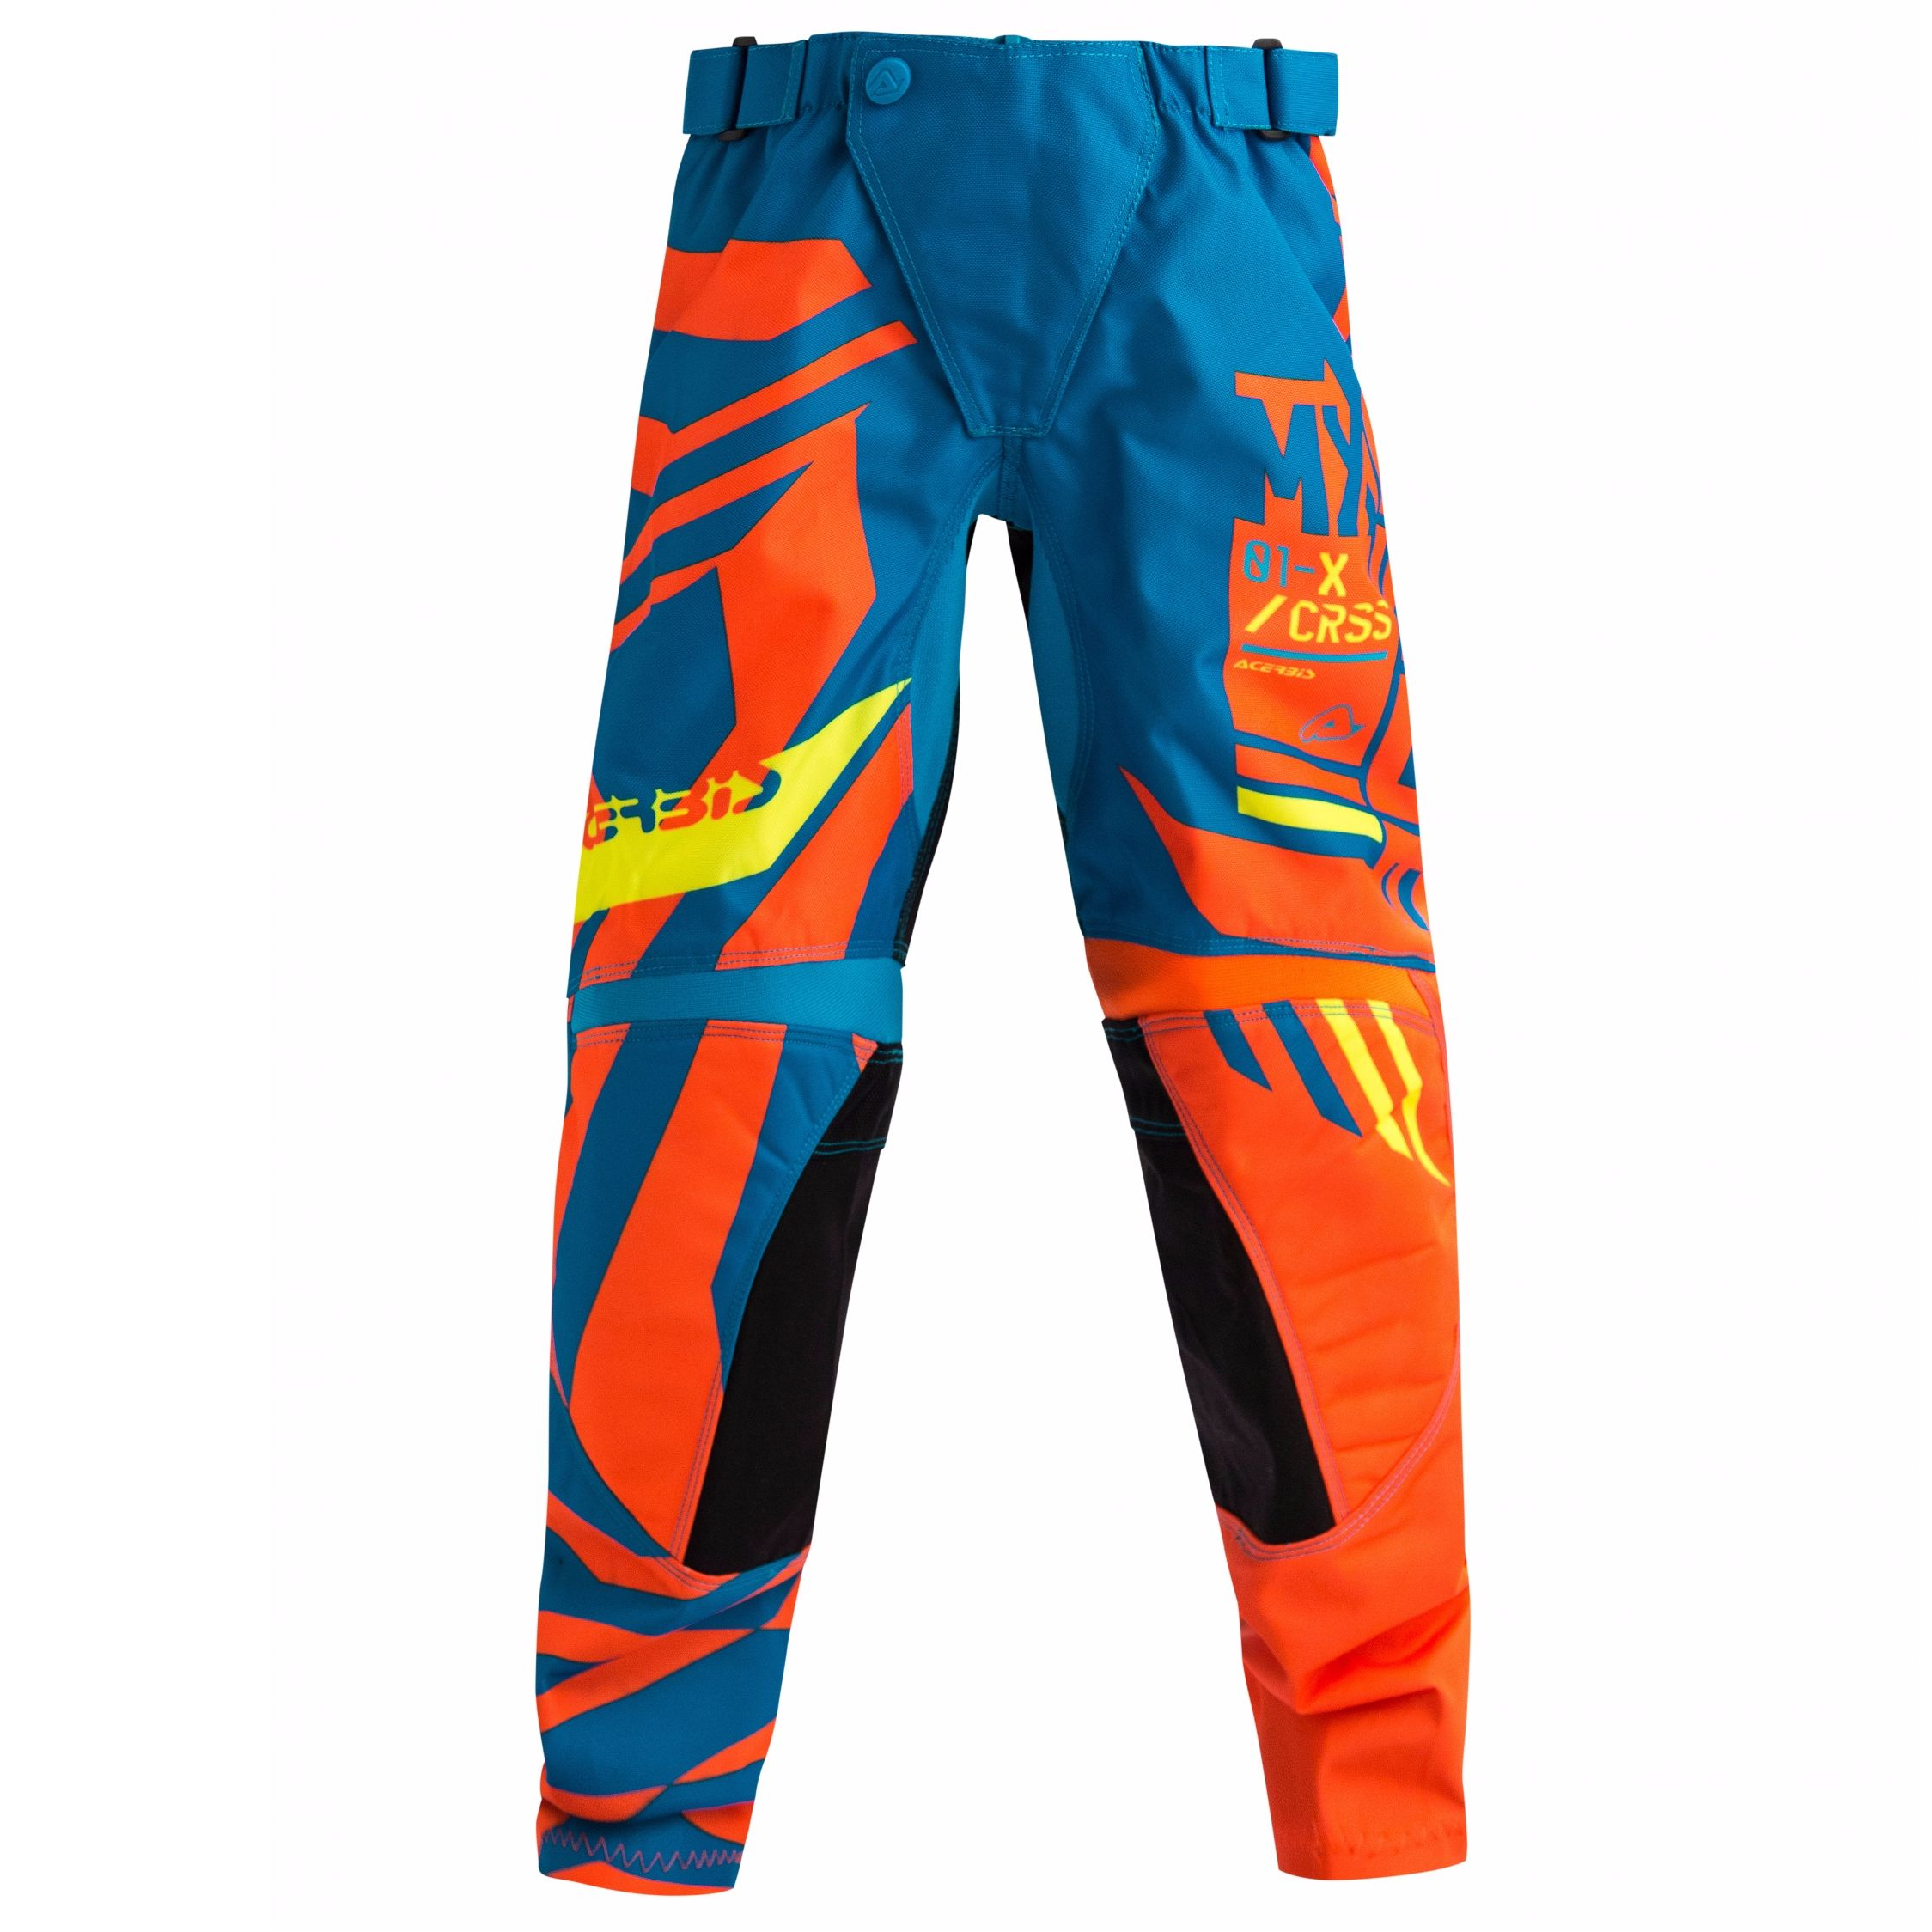 Pantalon Cross Acerbis Fitcross Kid - Edition Limitee -